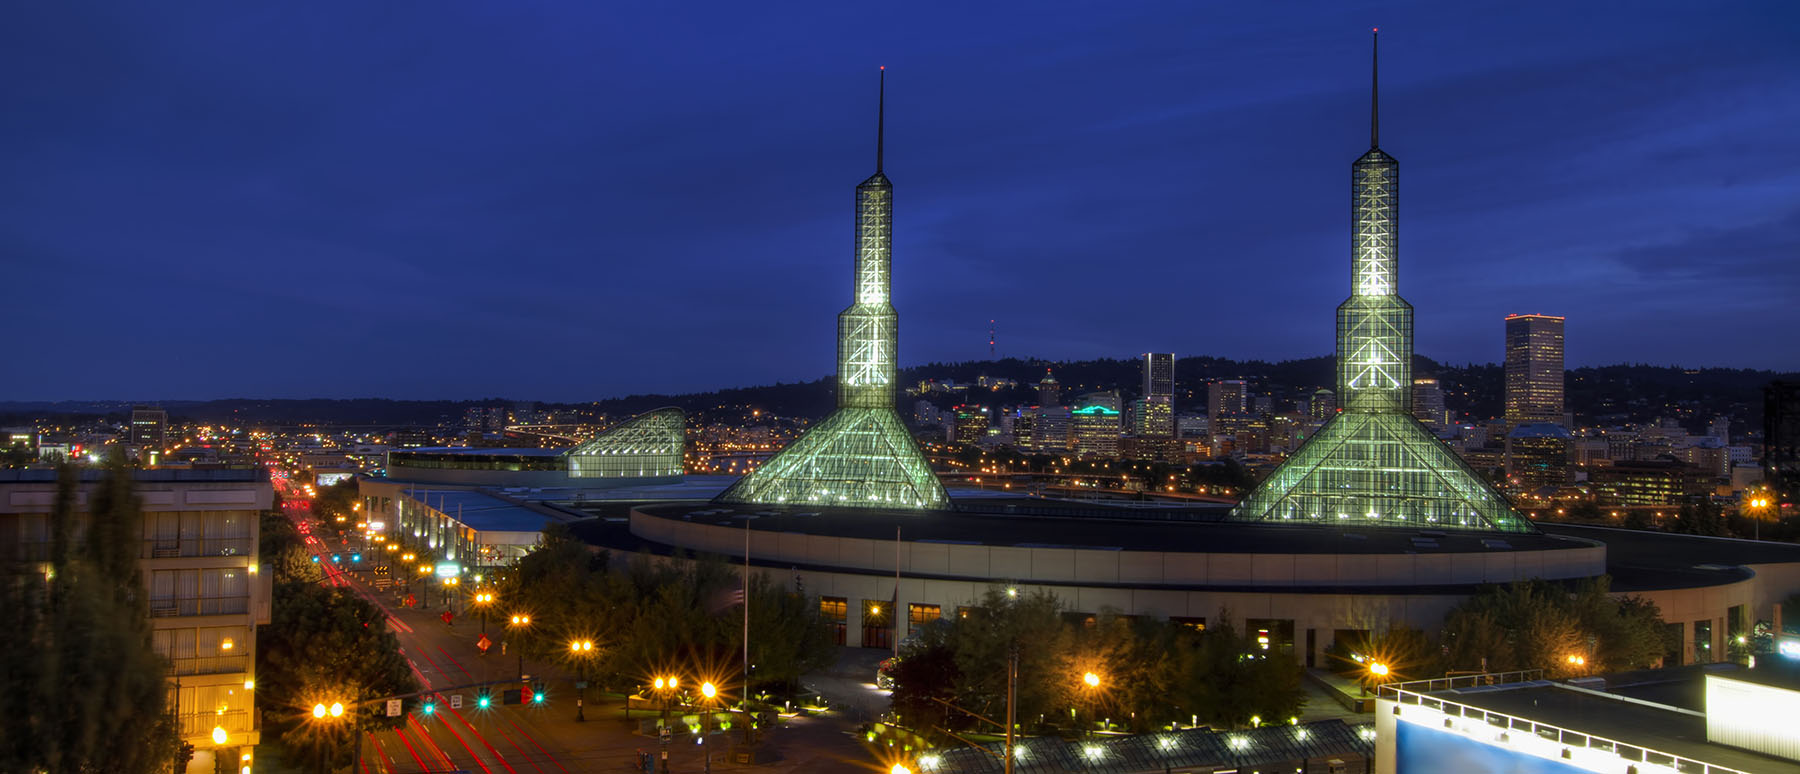 Oregon Convention Center with Portland Downtown Skyline at Blue Hour 2